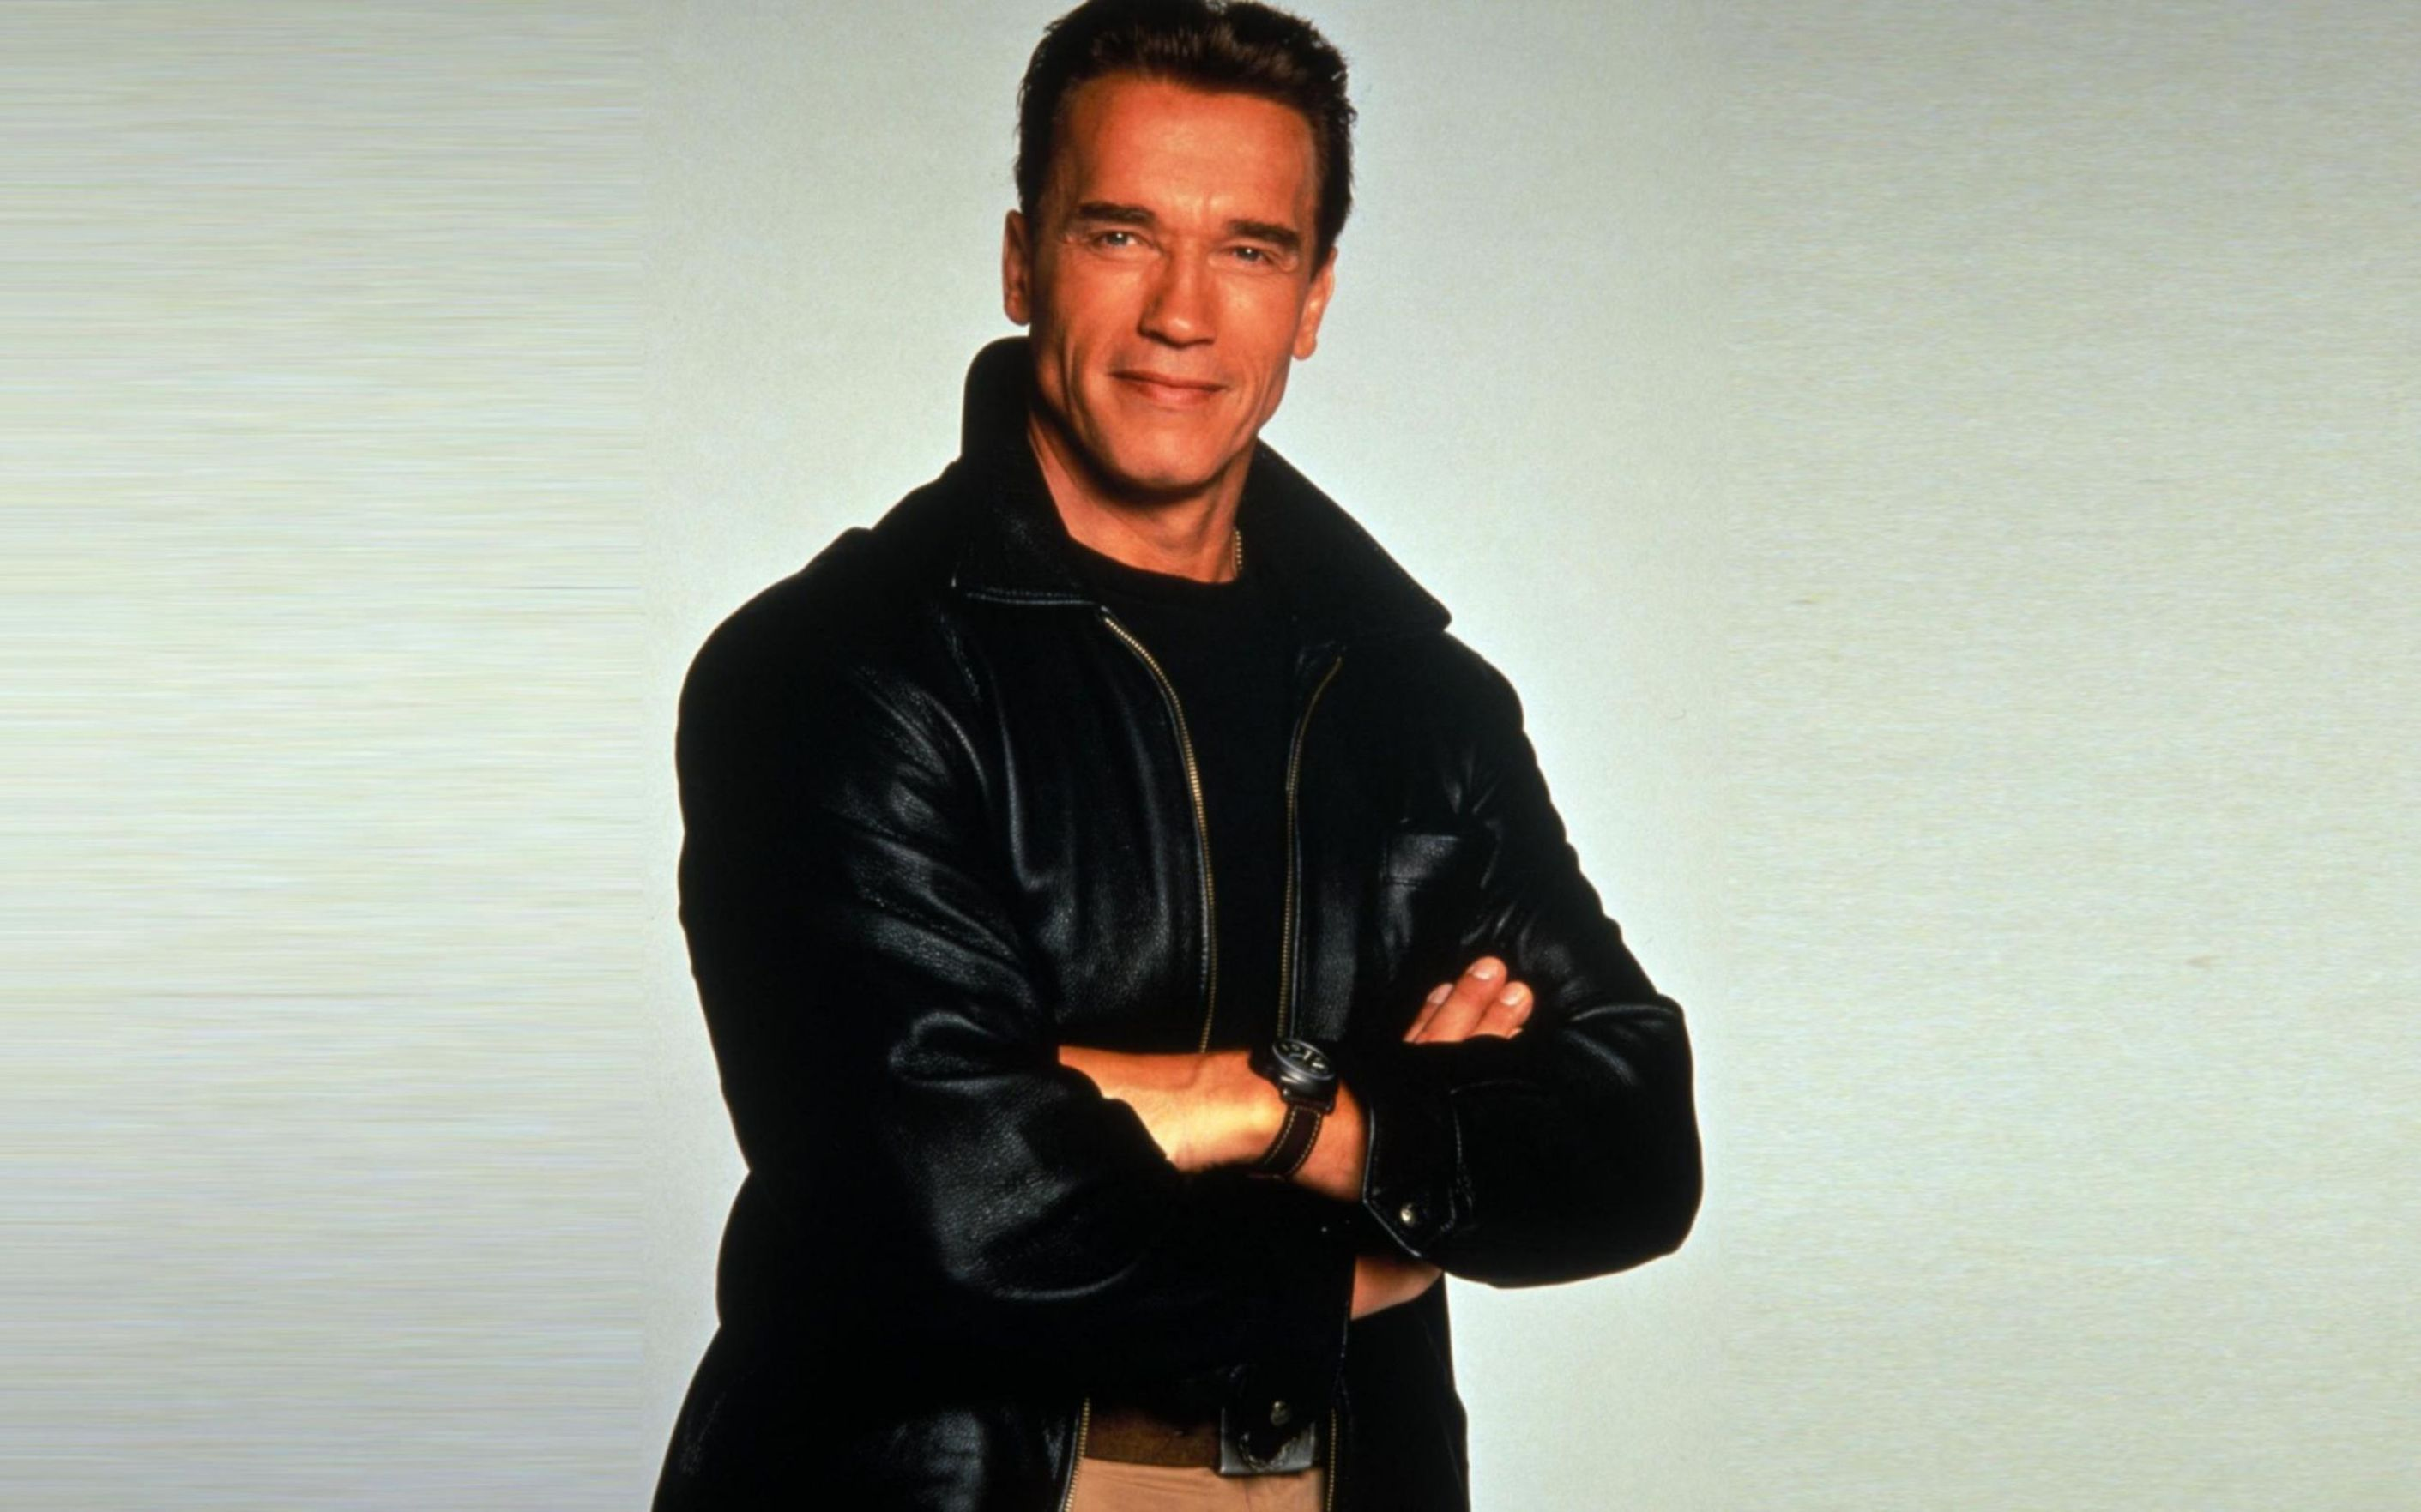 Download free HD Arnold Schwarzenegger Wallpaper, image